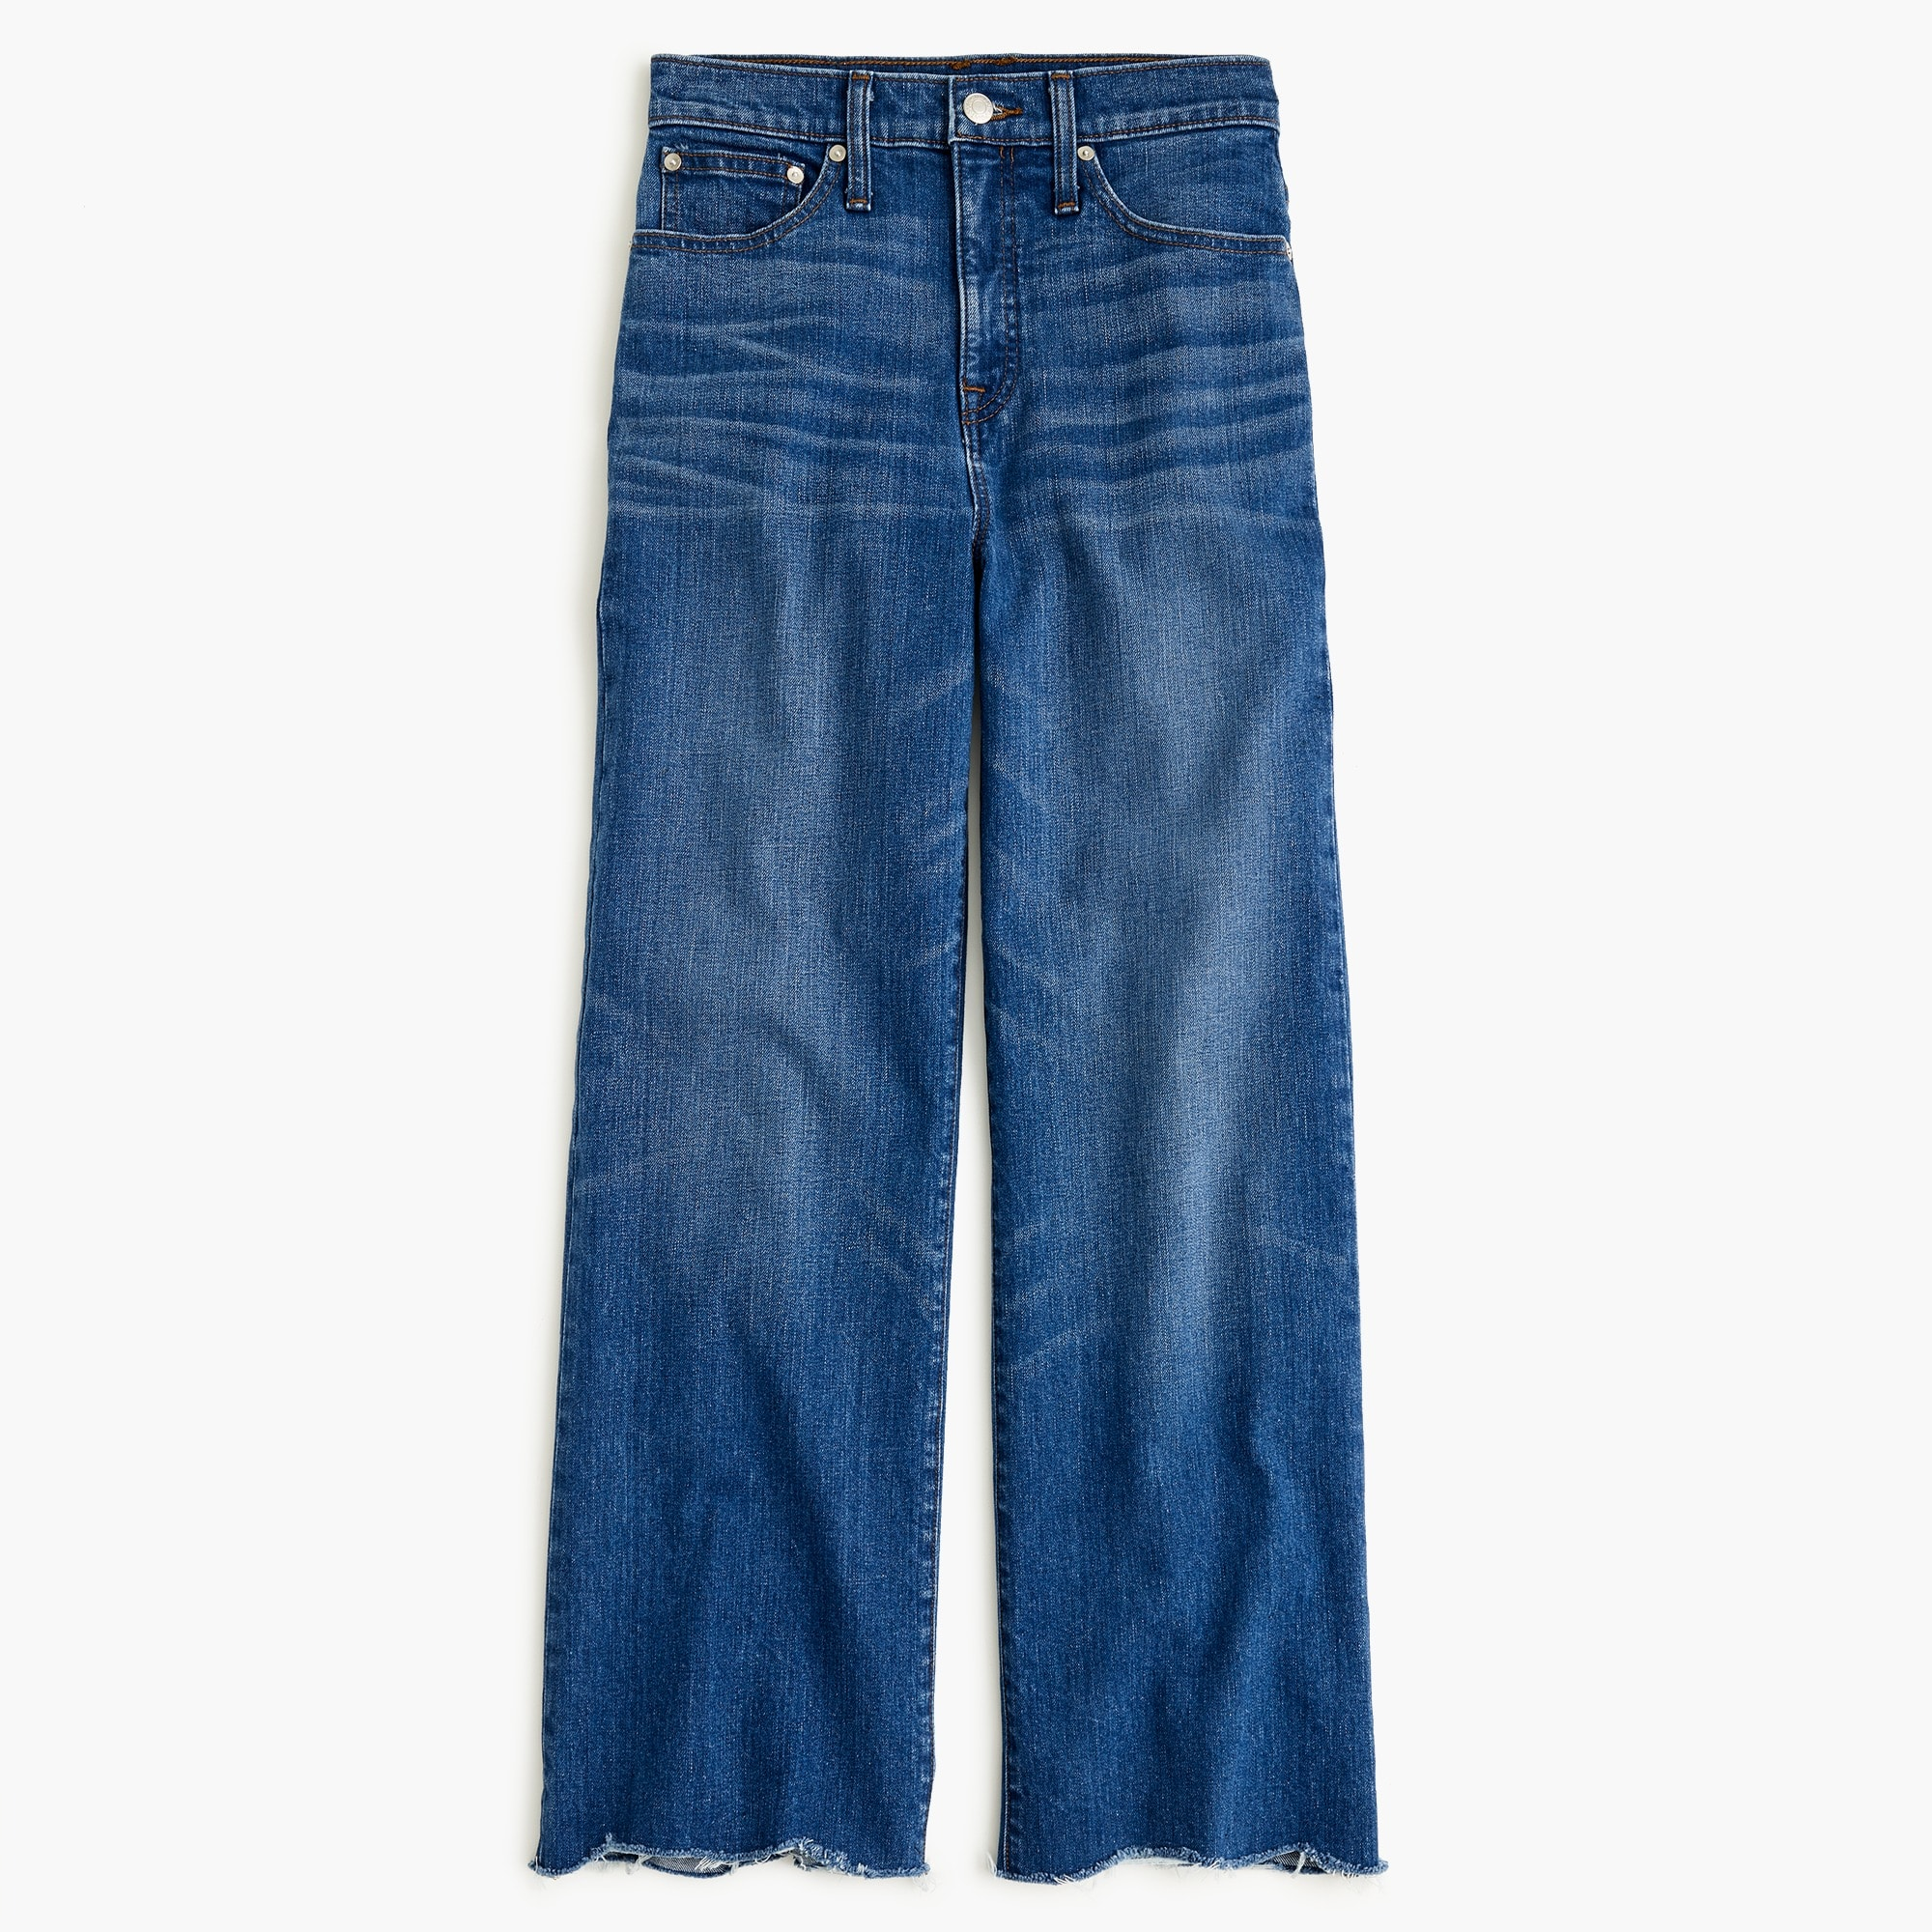 Classic Wide-leg cropped jean with chewed hems